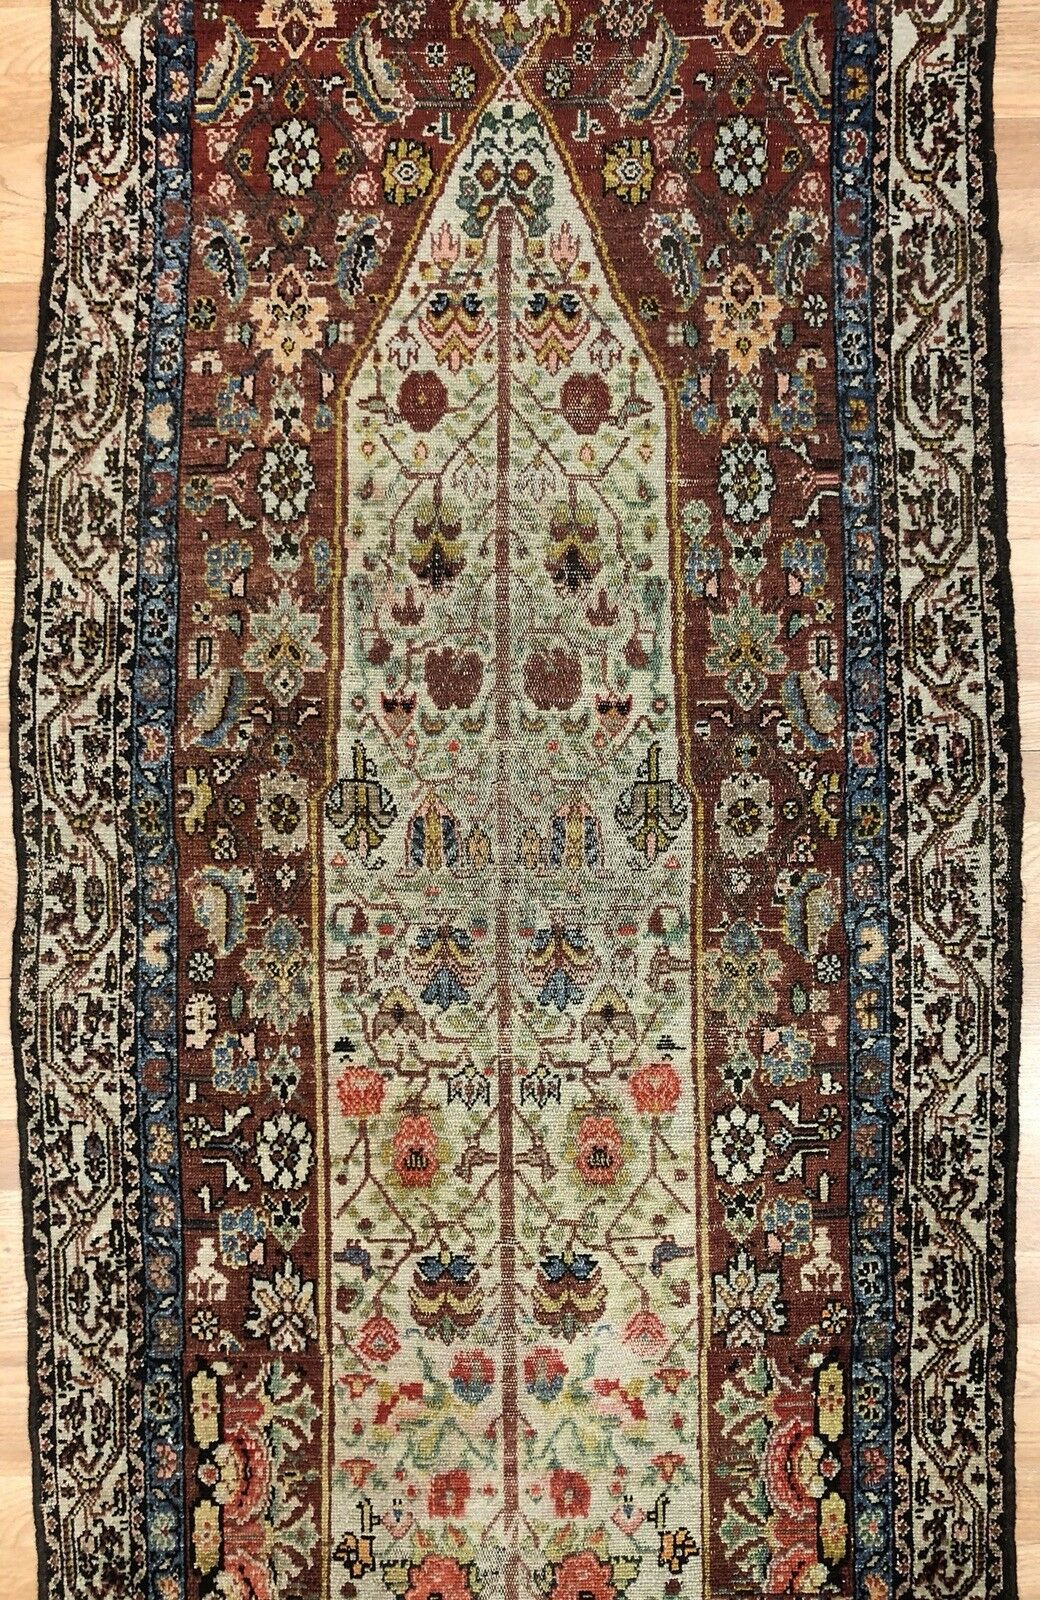 Special Shalamzar - 1890s Antique Bakhtiari Rug - Tribal Carpet - 3' x 11'6